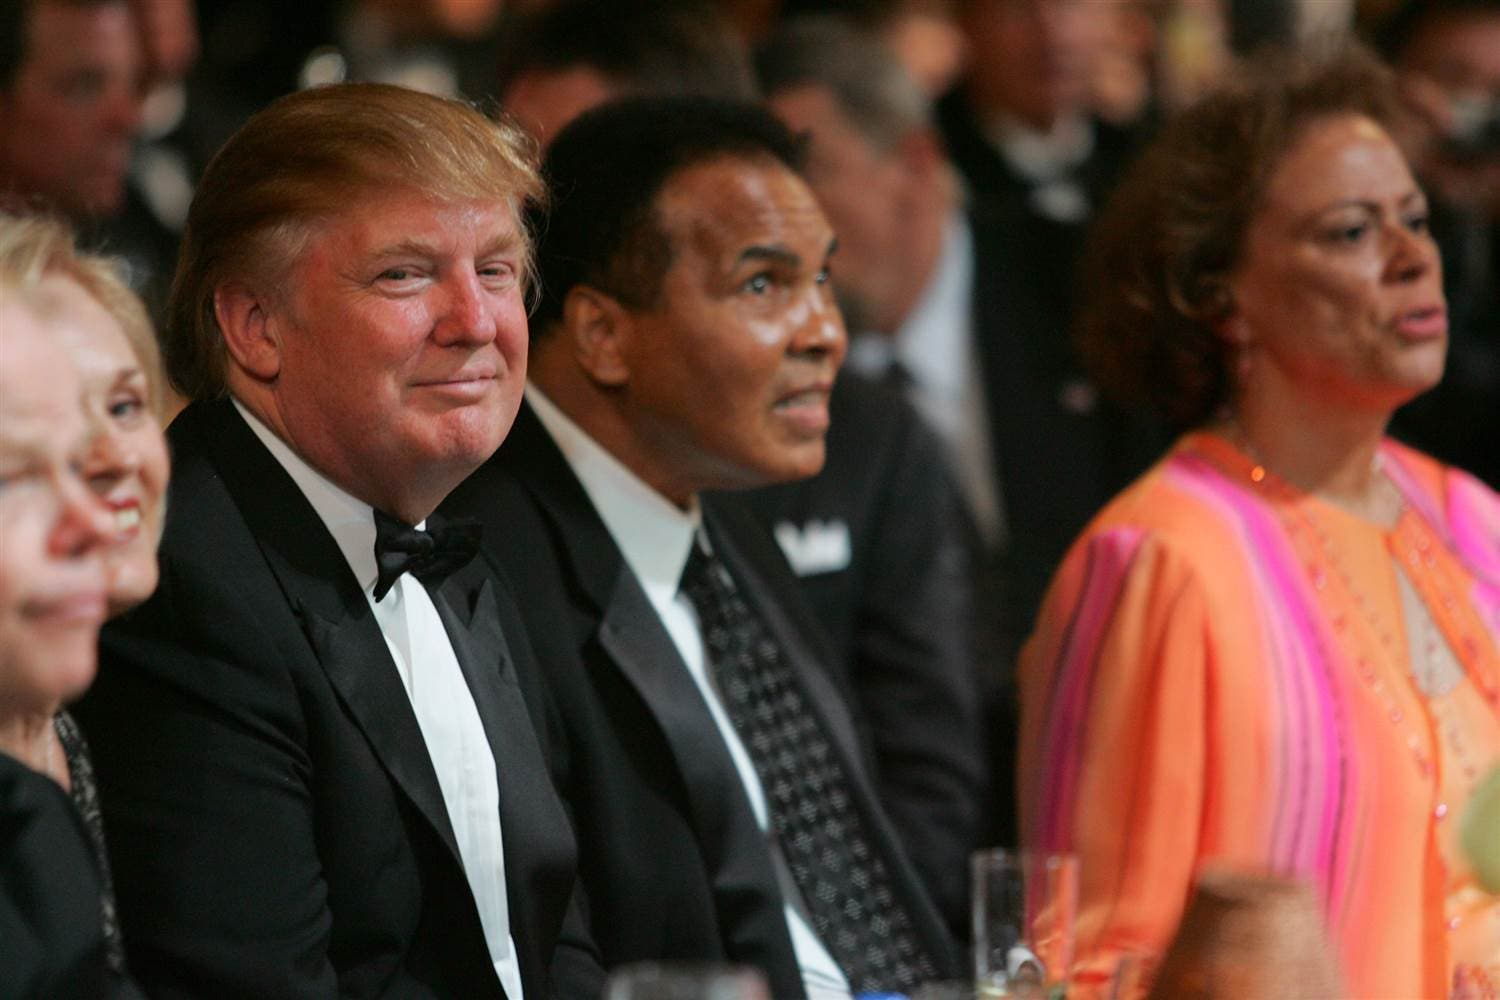 the champ and the trump donald s friendship muhammad ali in donald s friendship muhammad ali in pictures